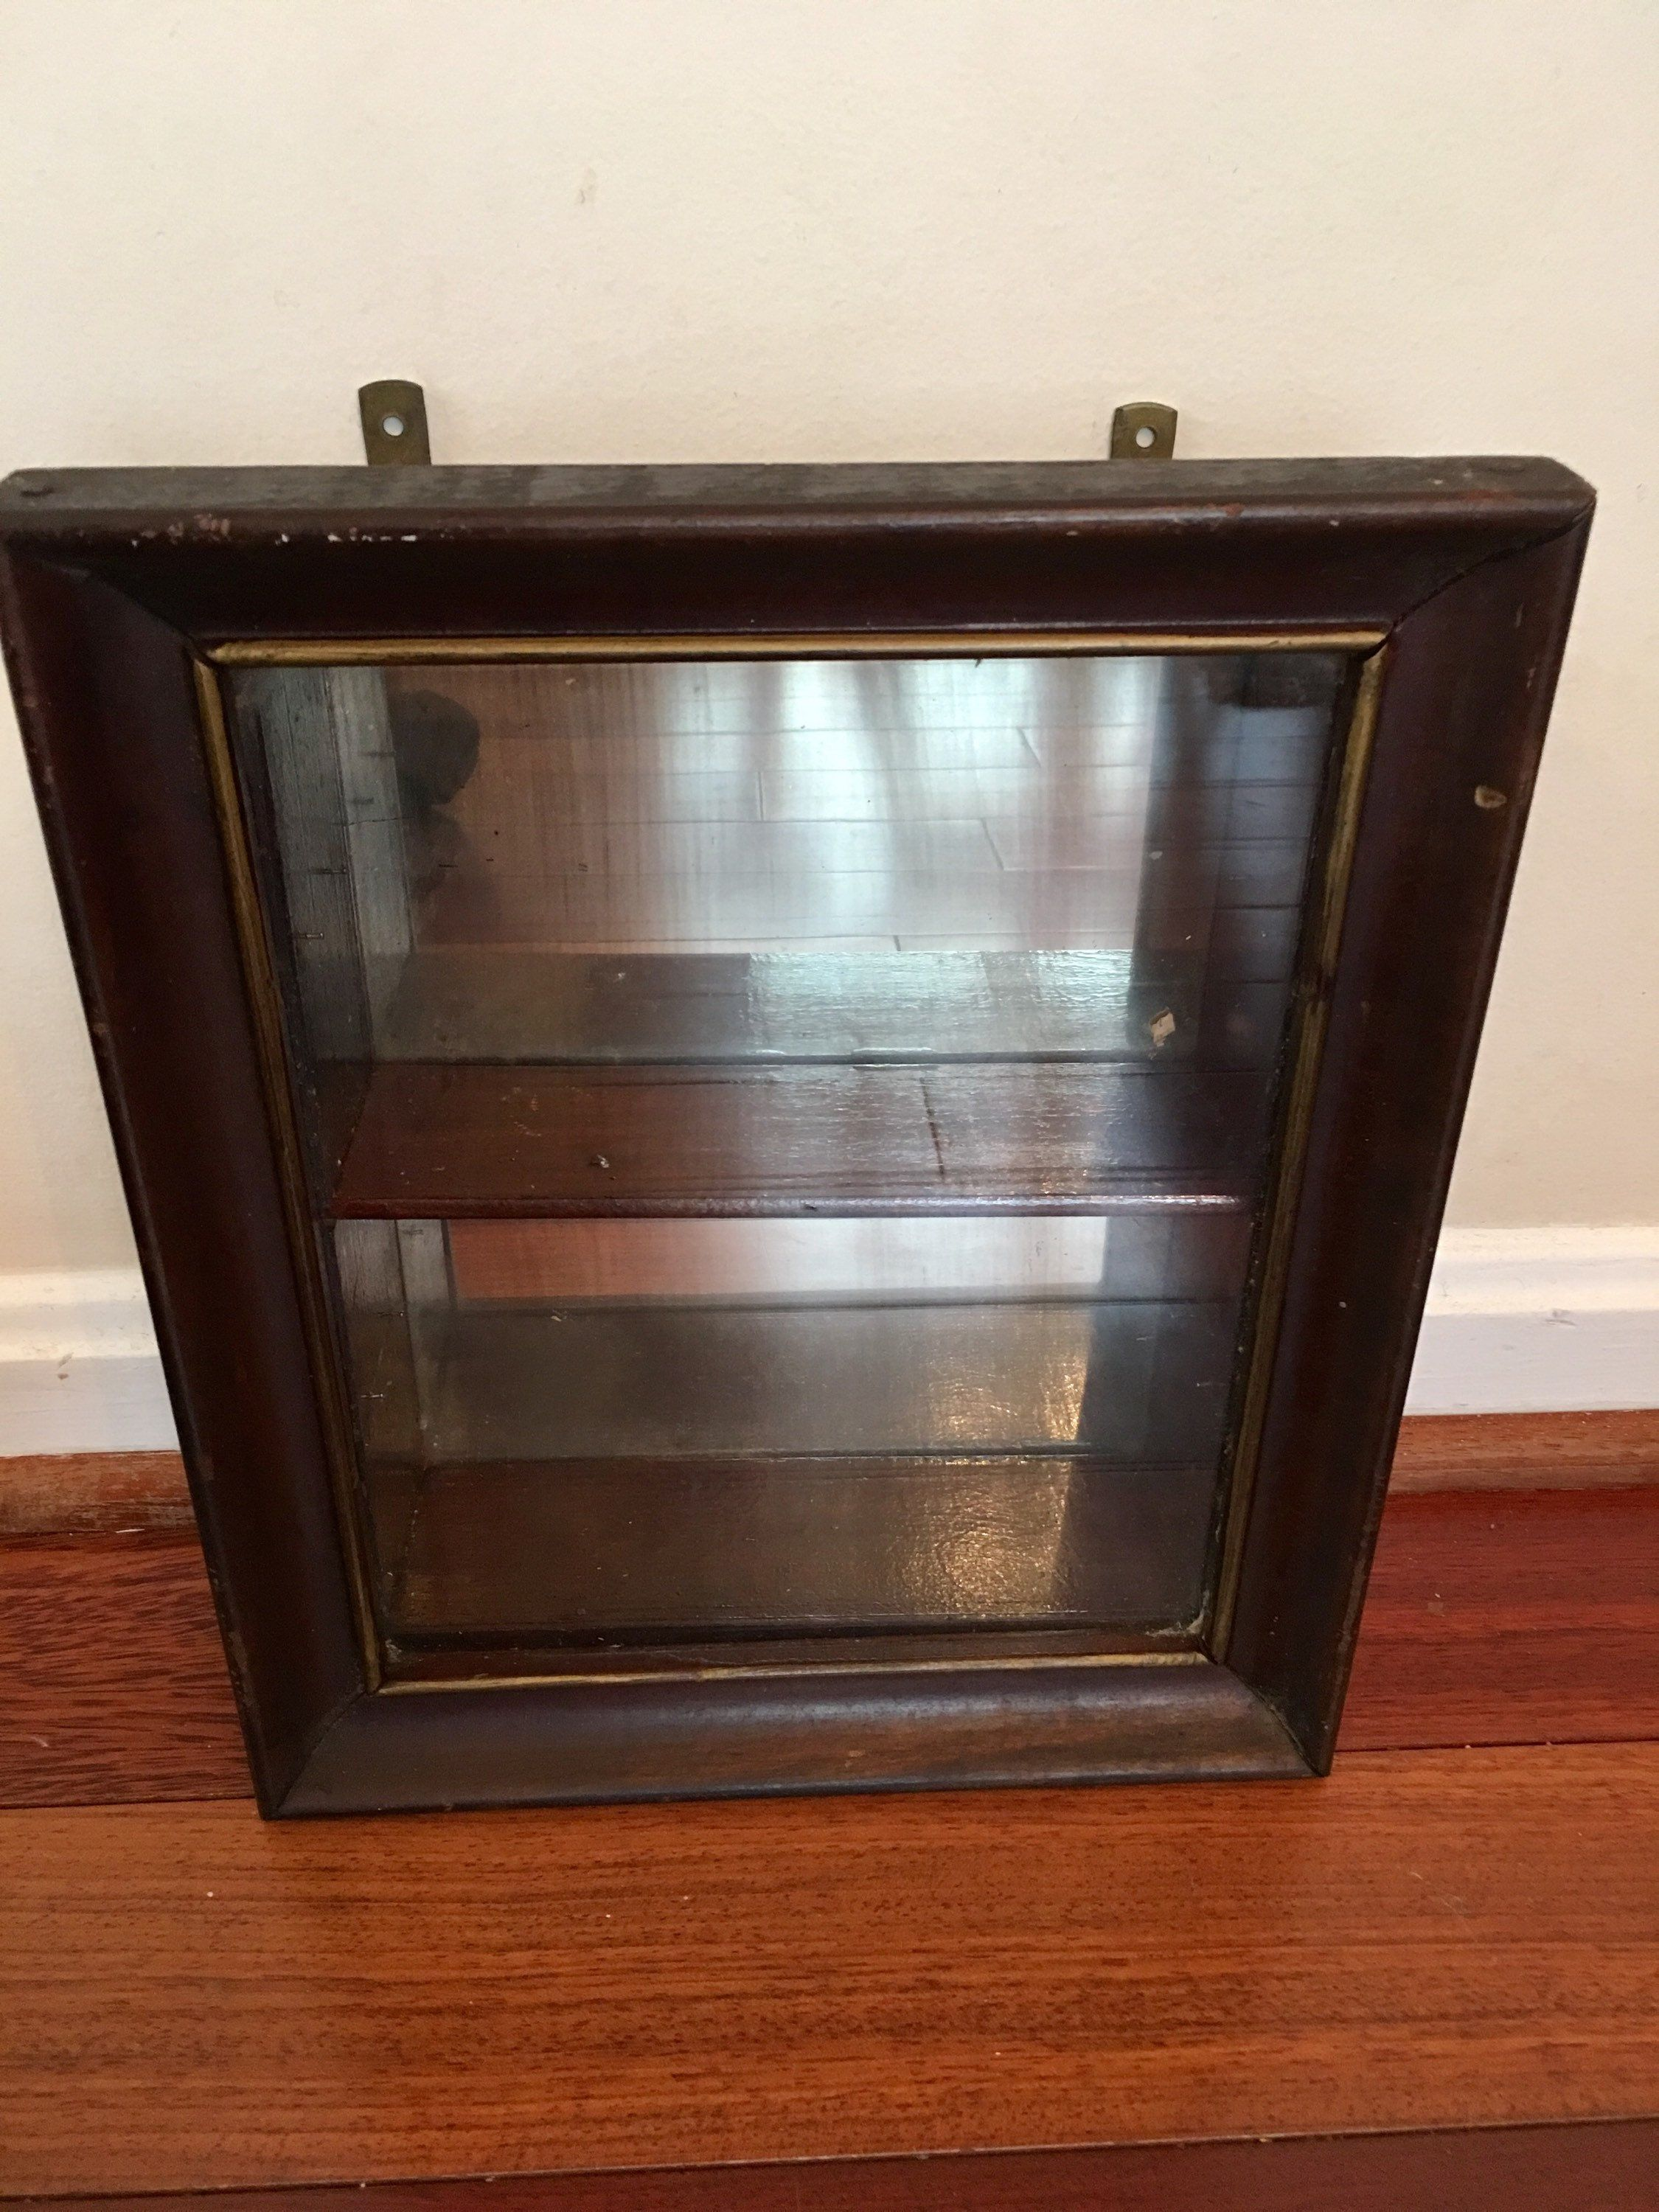 Antique Medicine Cabinet, Wooden Wall Cabinet with Glass ...